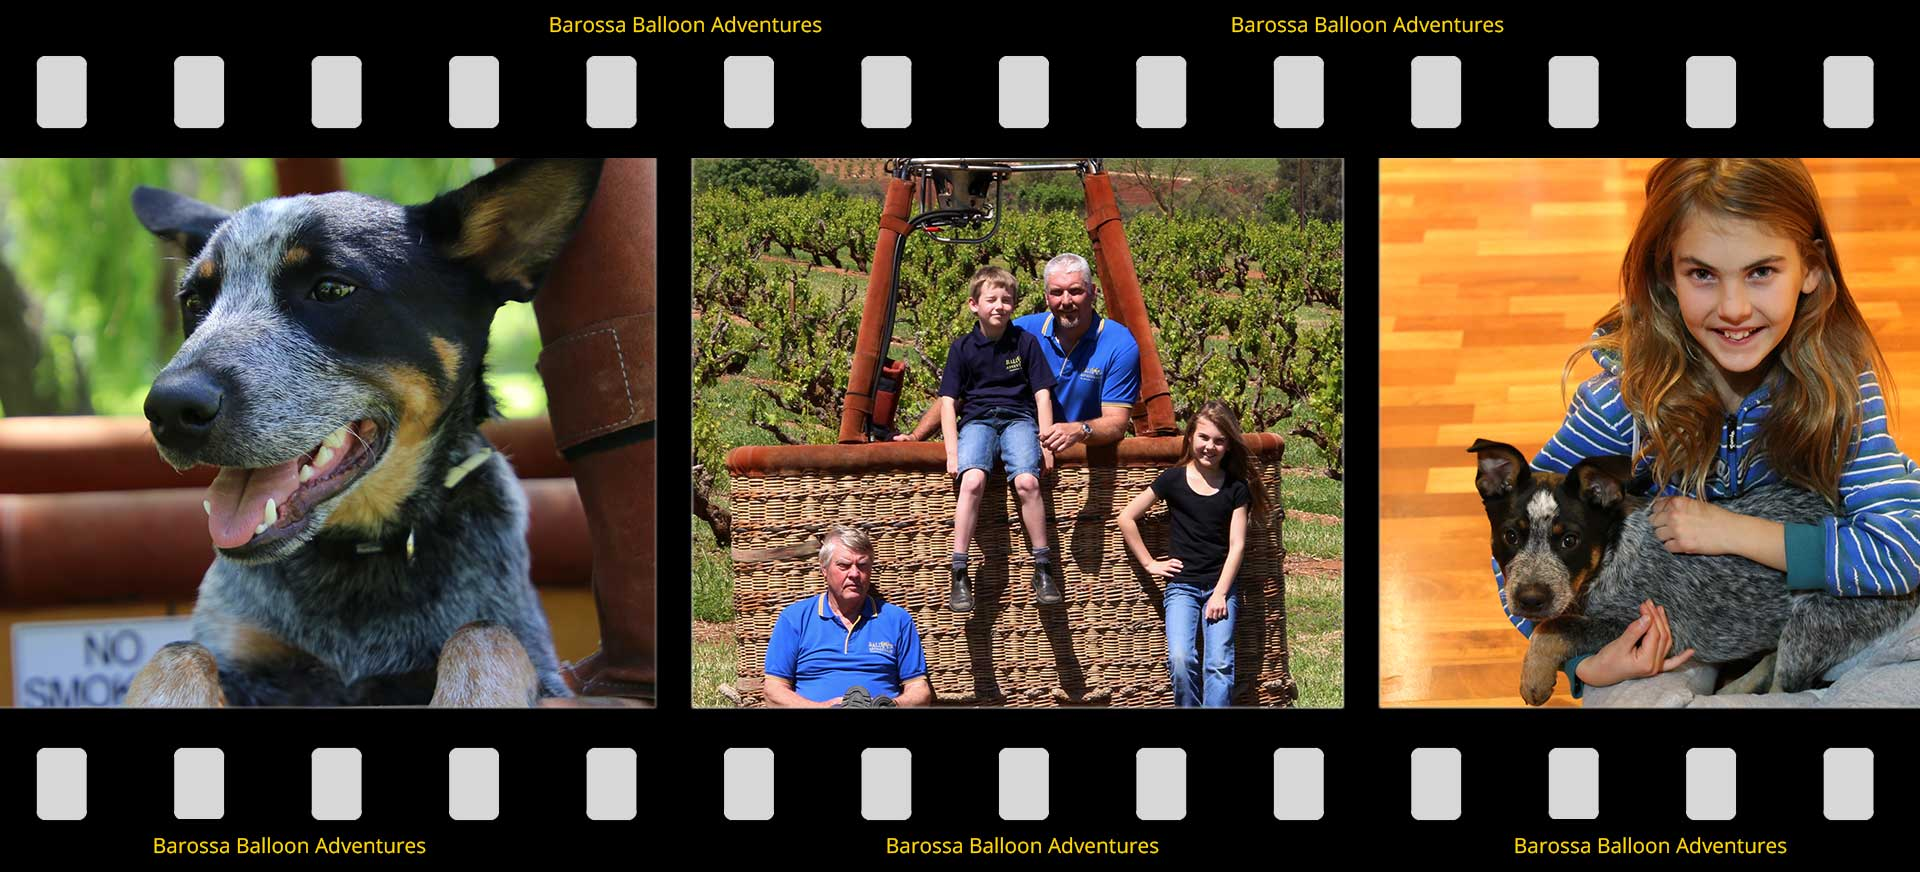 gibson family image strip post Balloon Adventures Barossa flight